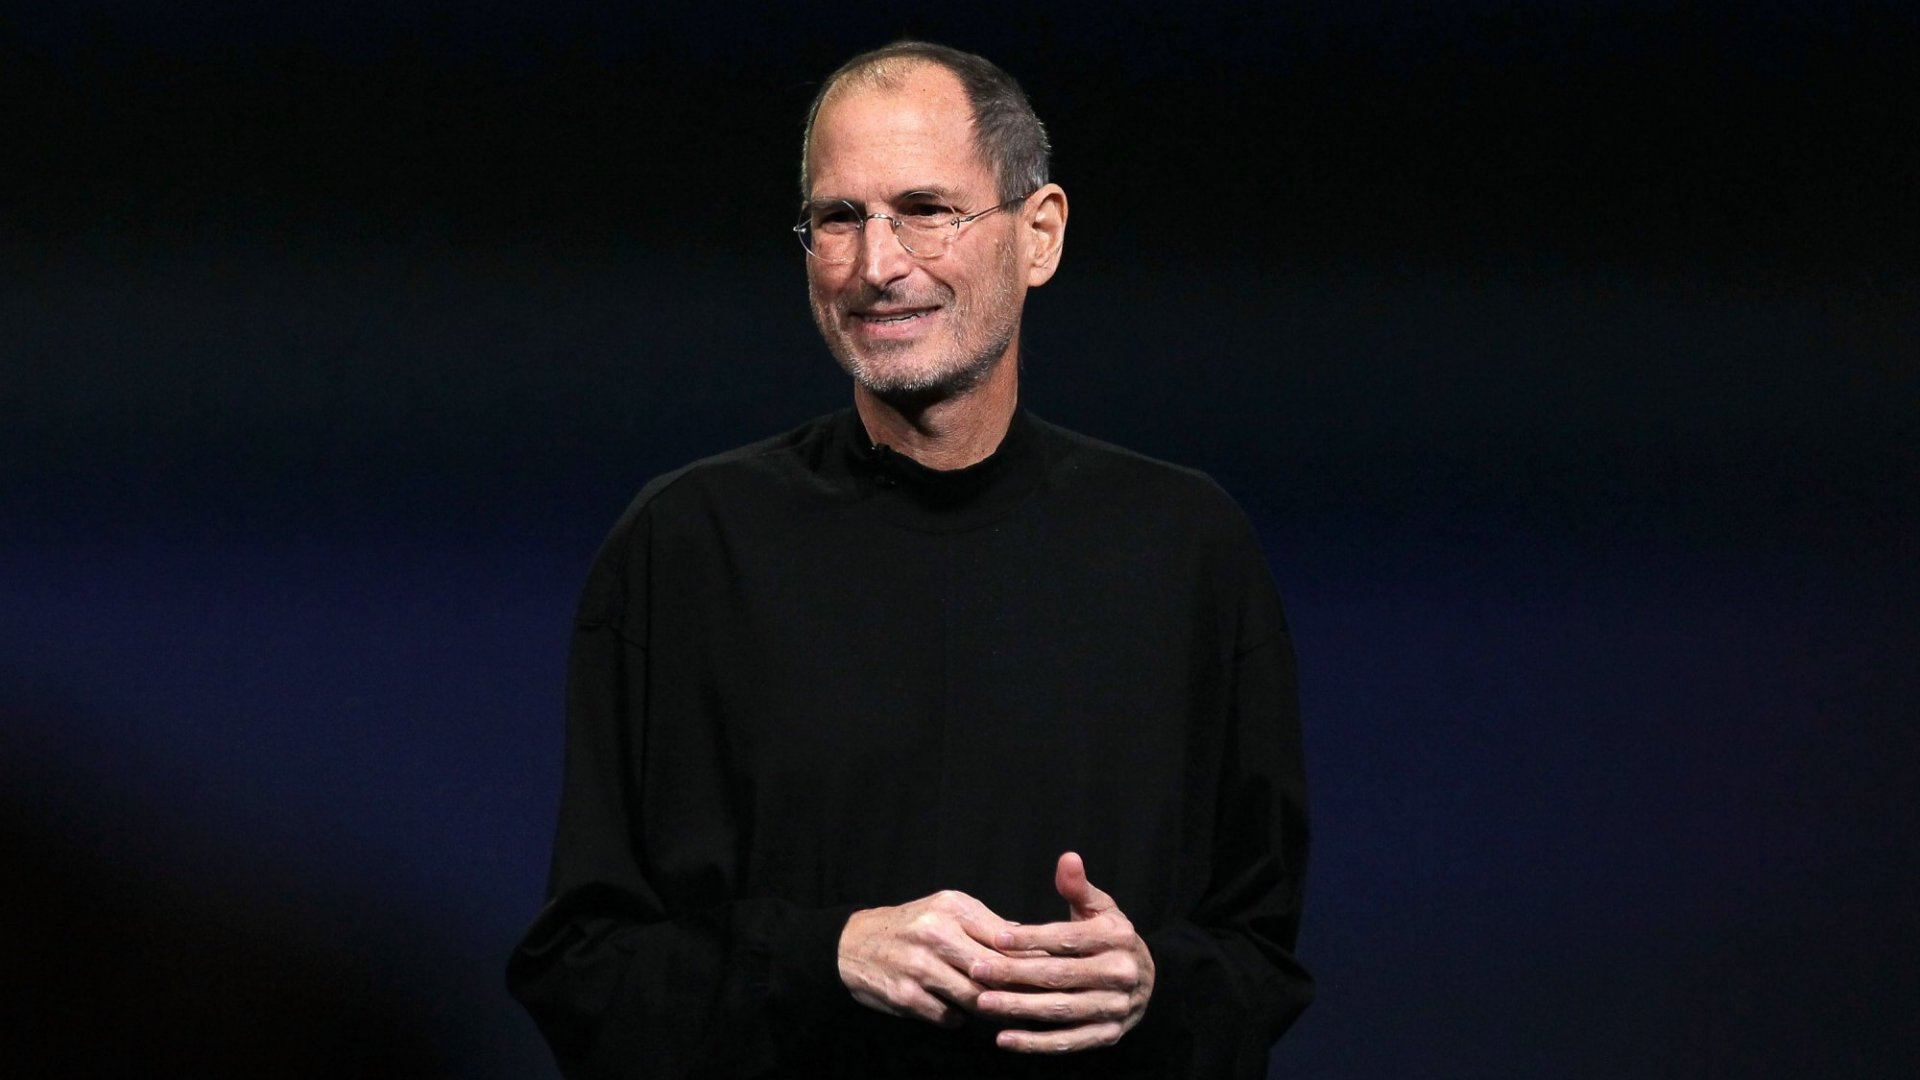 How Steve Jobs Became a Better Boss When He Curbed His Narcissism